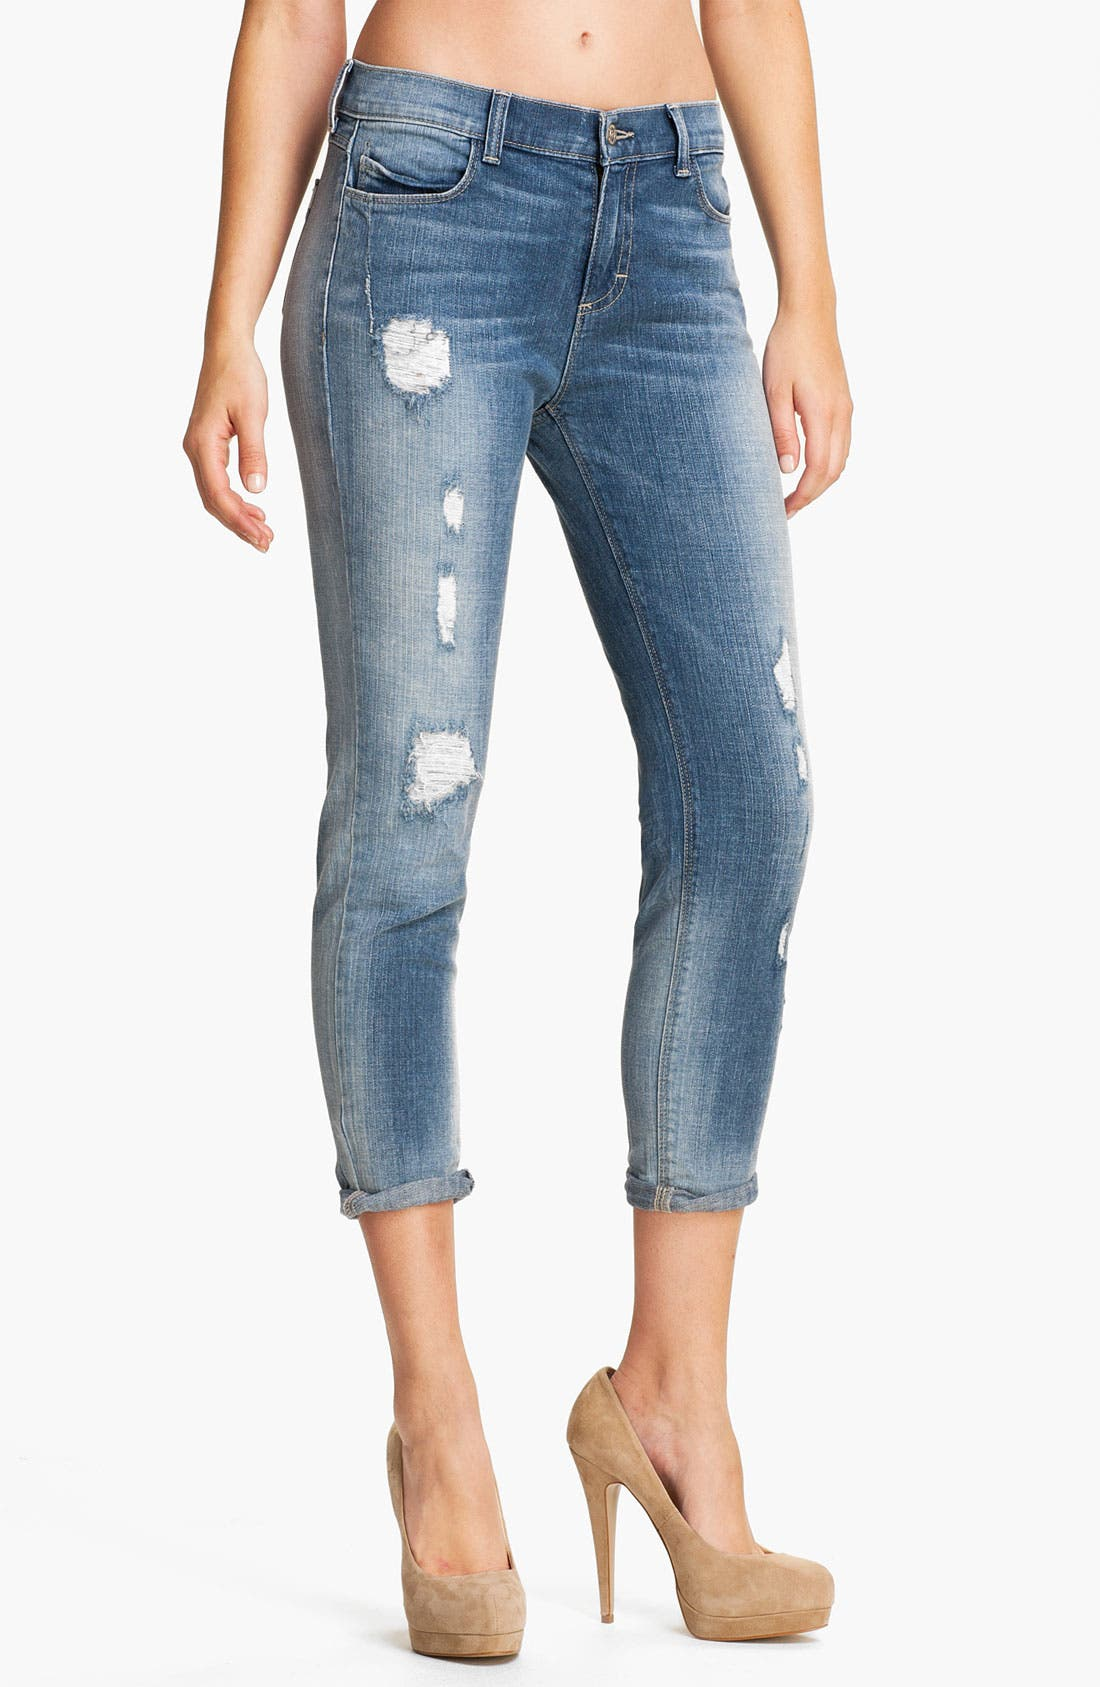 Alternate Image 1 Selected - Siwy 'Kendra' Destroyed Crop Skinny Jeans (I Don't Care)